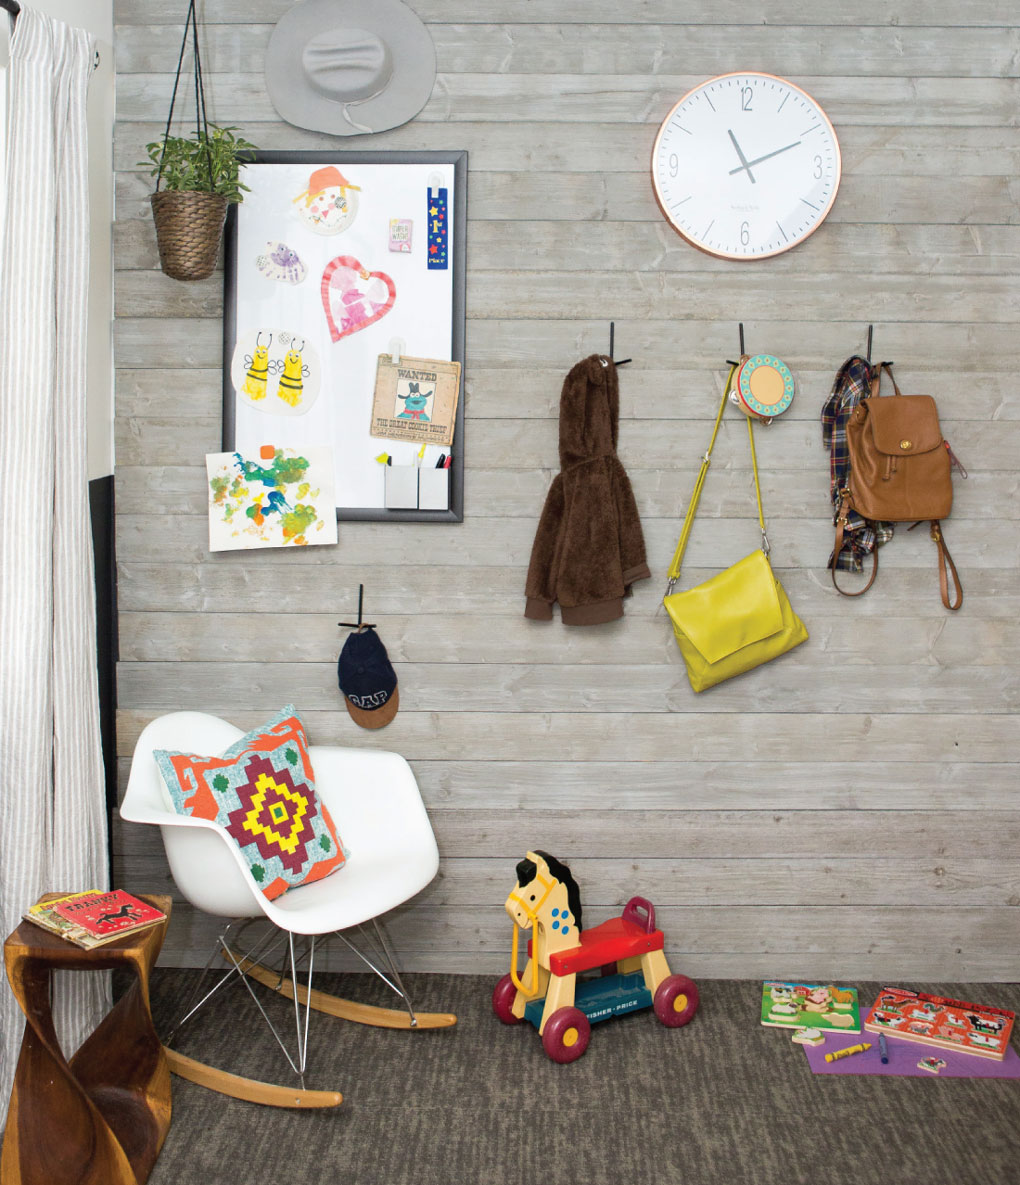 Downsized play room